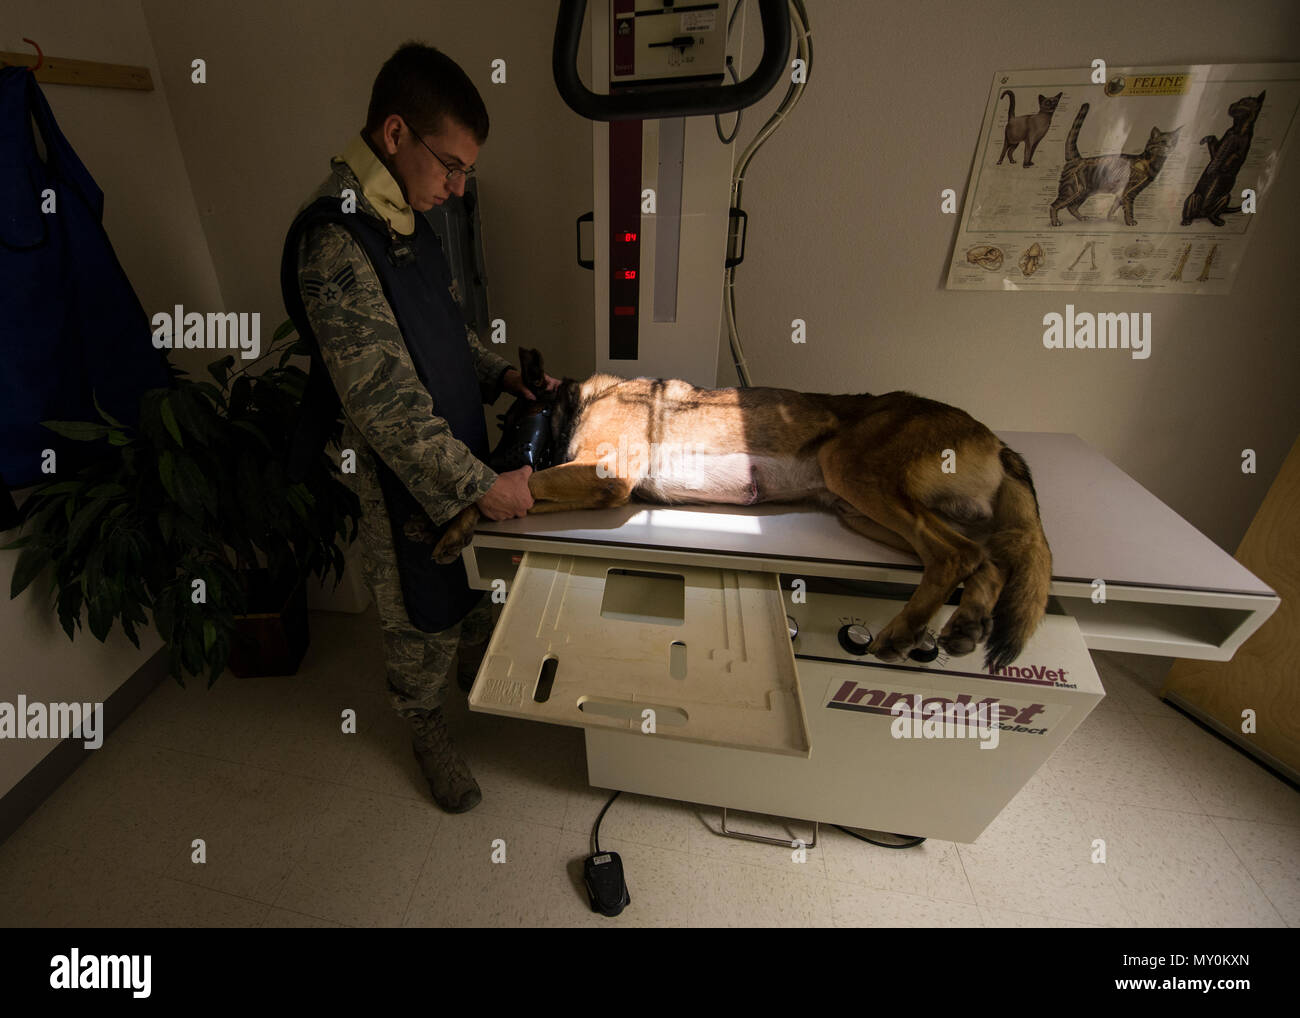 Staff Sgt. David, a military working dog handler with the 49th Security Forces Squadron, assists his military working dog, Dylan, during an x-ray scan at the veterinary clinic at Holloman Air Force Base, N.M., on Dec. 13, 2016. Four of Holloman's MWDs are battling health and medical related issues. To prevent and combat illness, the dogs routinely attend dental and medical checkups at the veterinary clinic on base. (Last names are being withheld due to operational requirements. U.S. Air Force photo by Airman 1st Class Alexis P. Docherty) - Stock Image